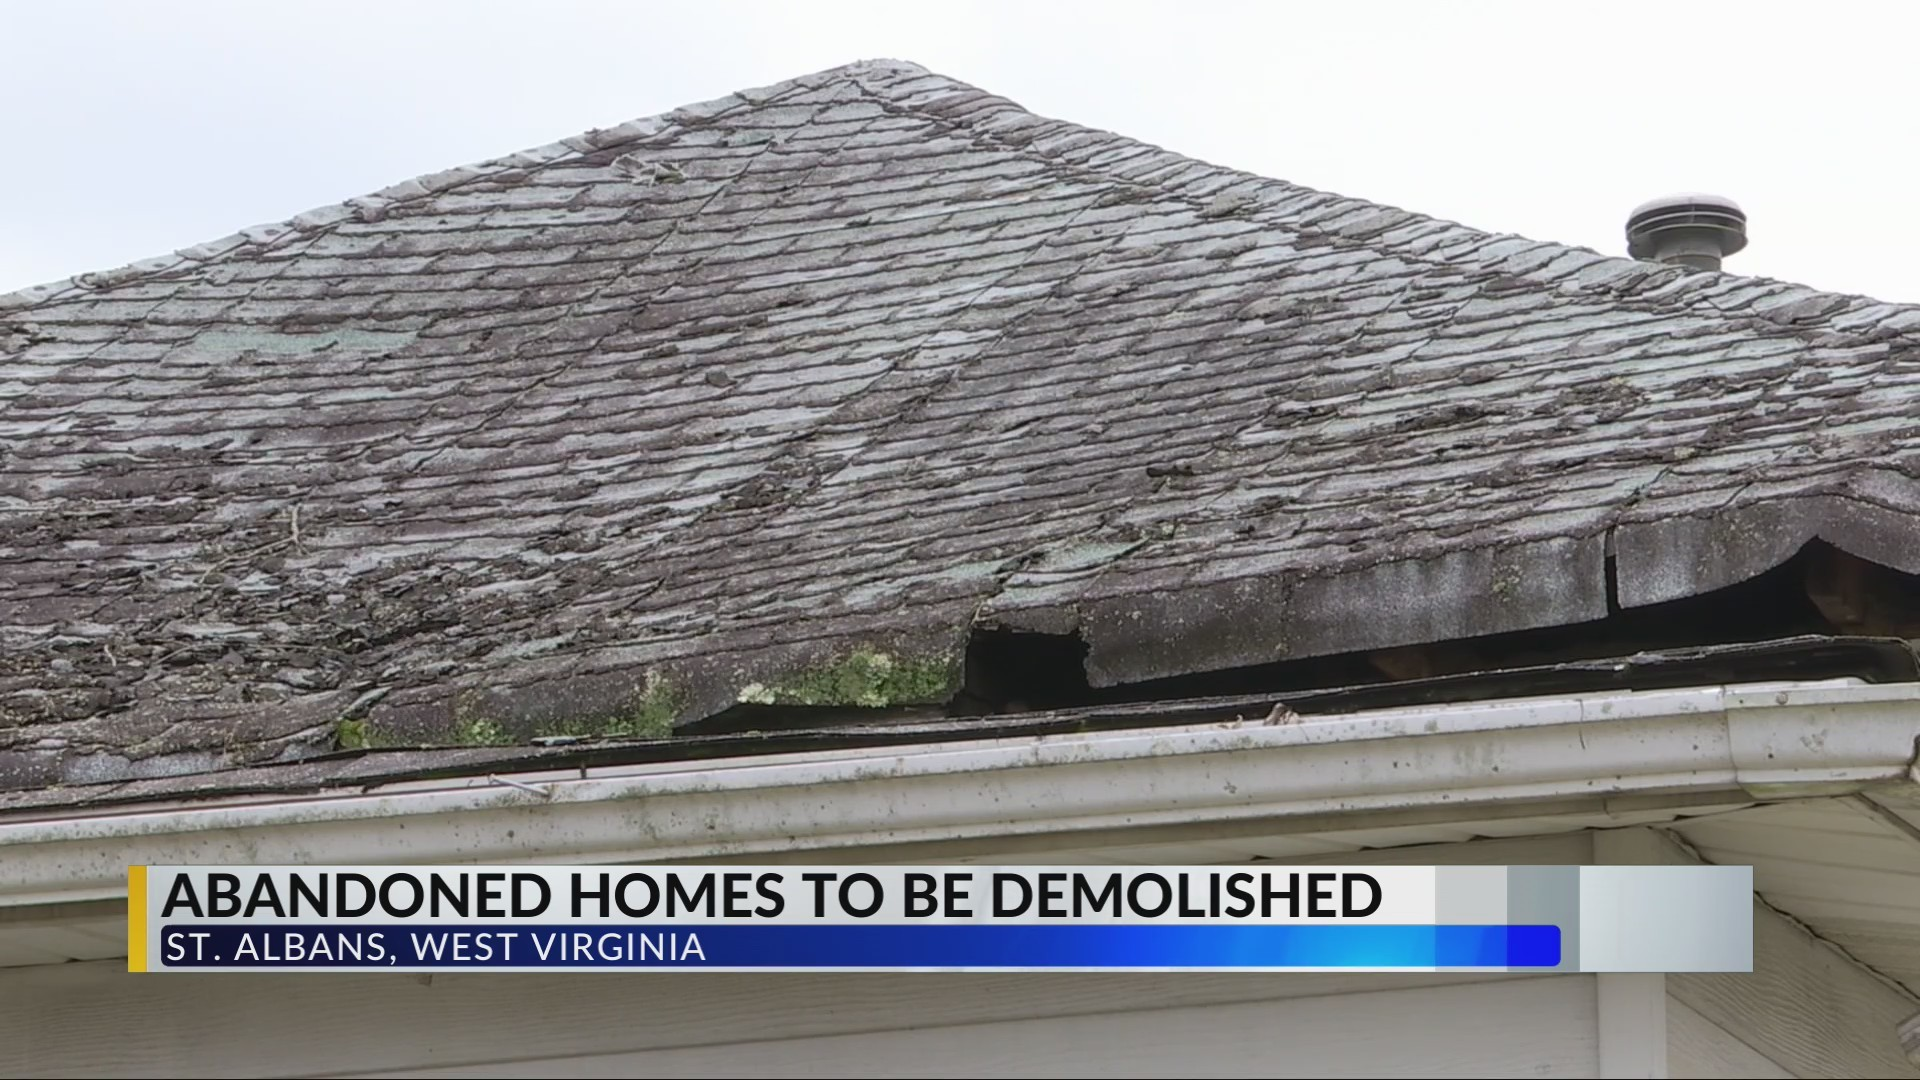 Kanawha County Commission to Demolish 5 Abandoned Properties in St. Albans